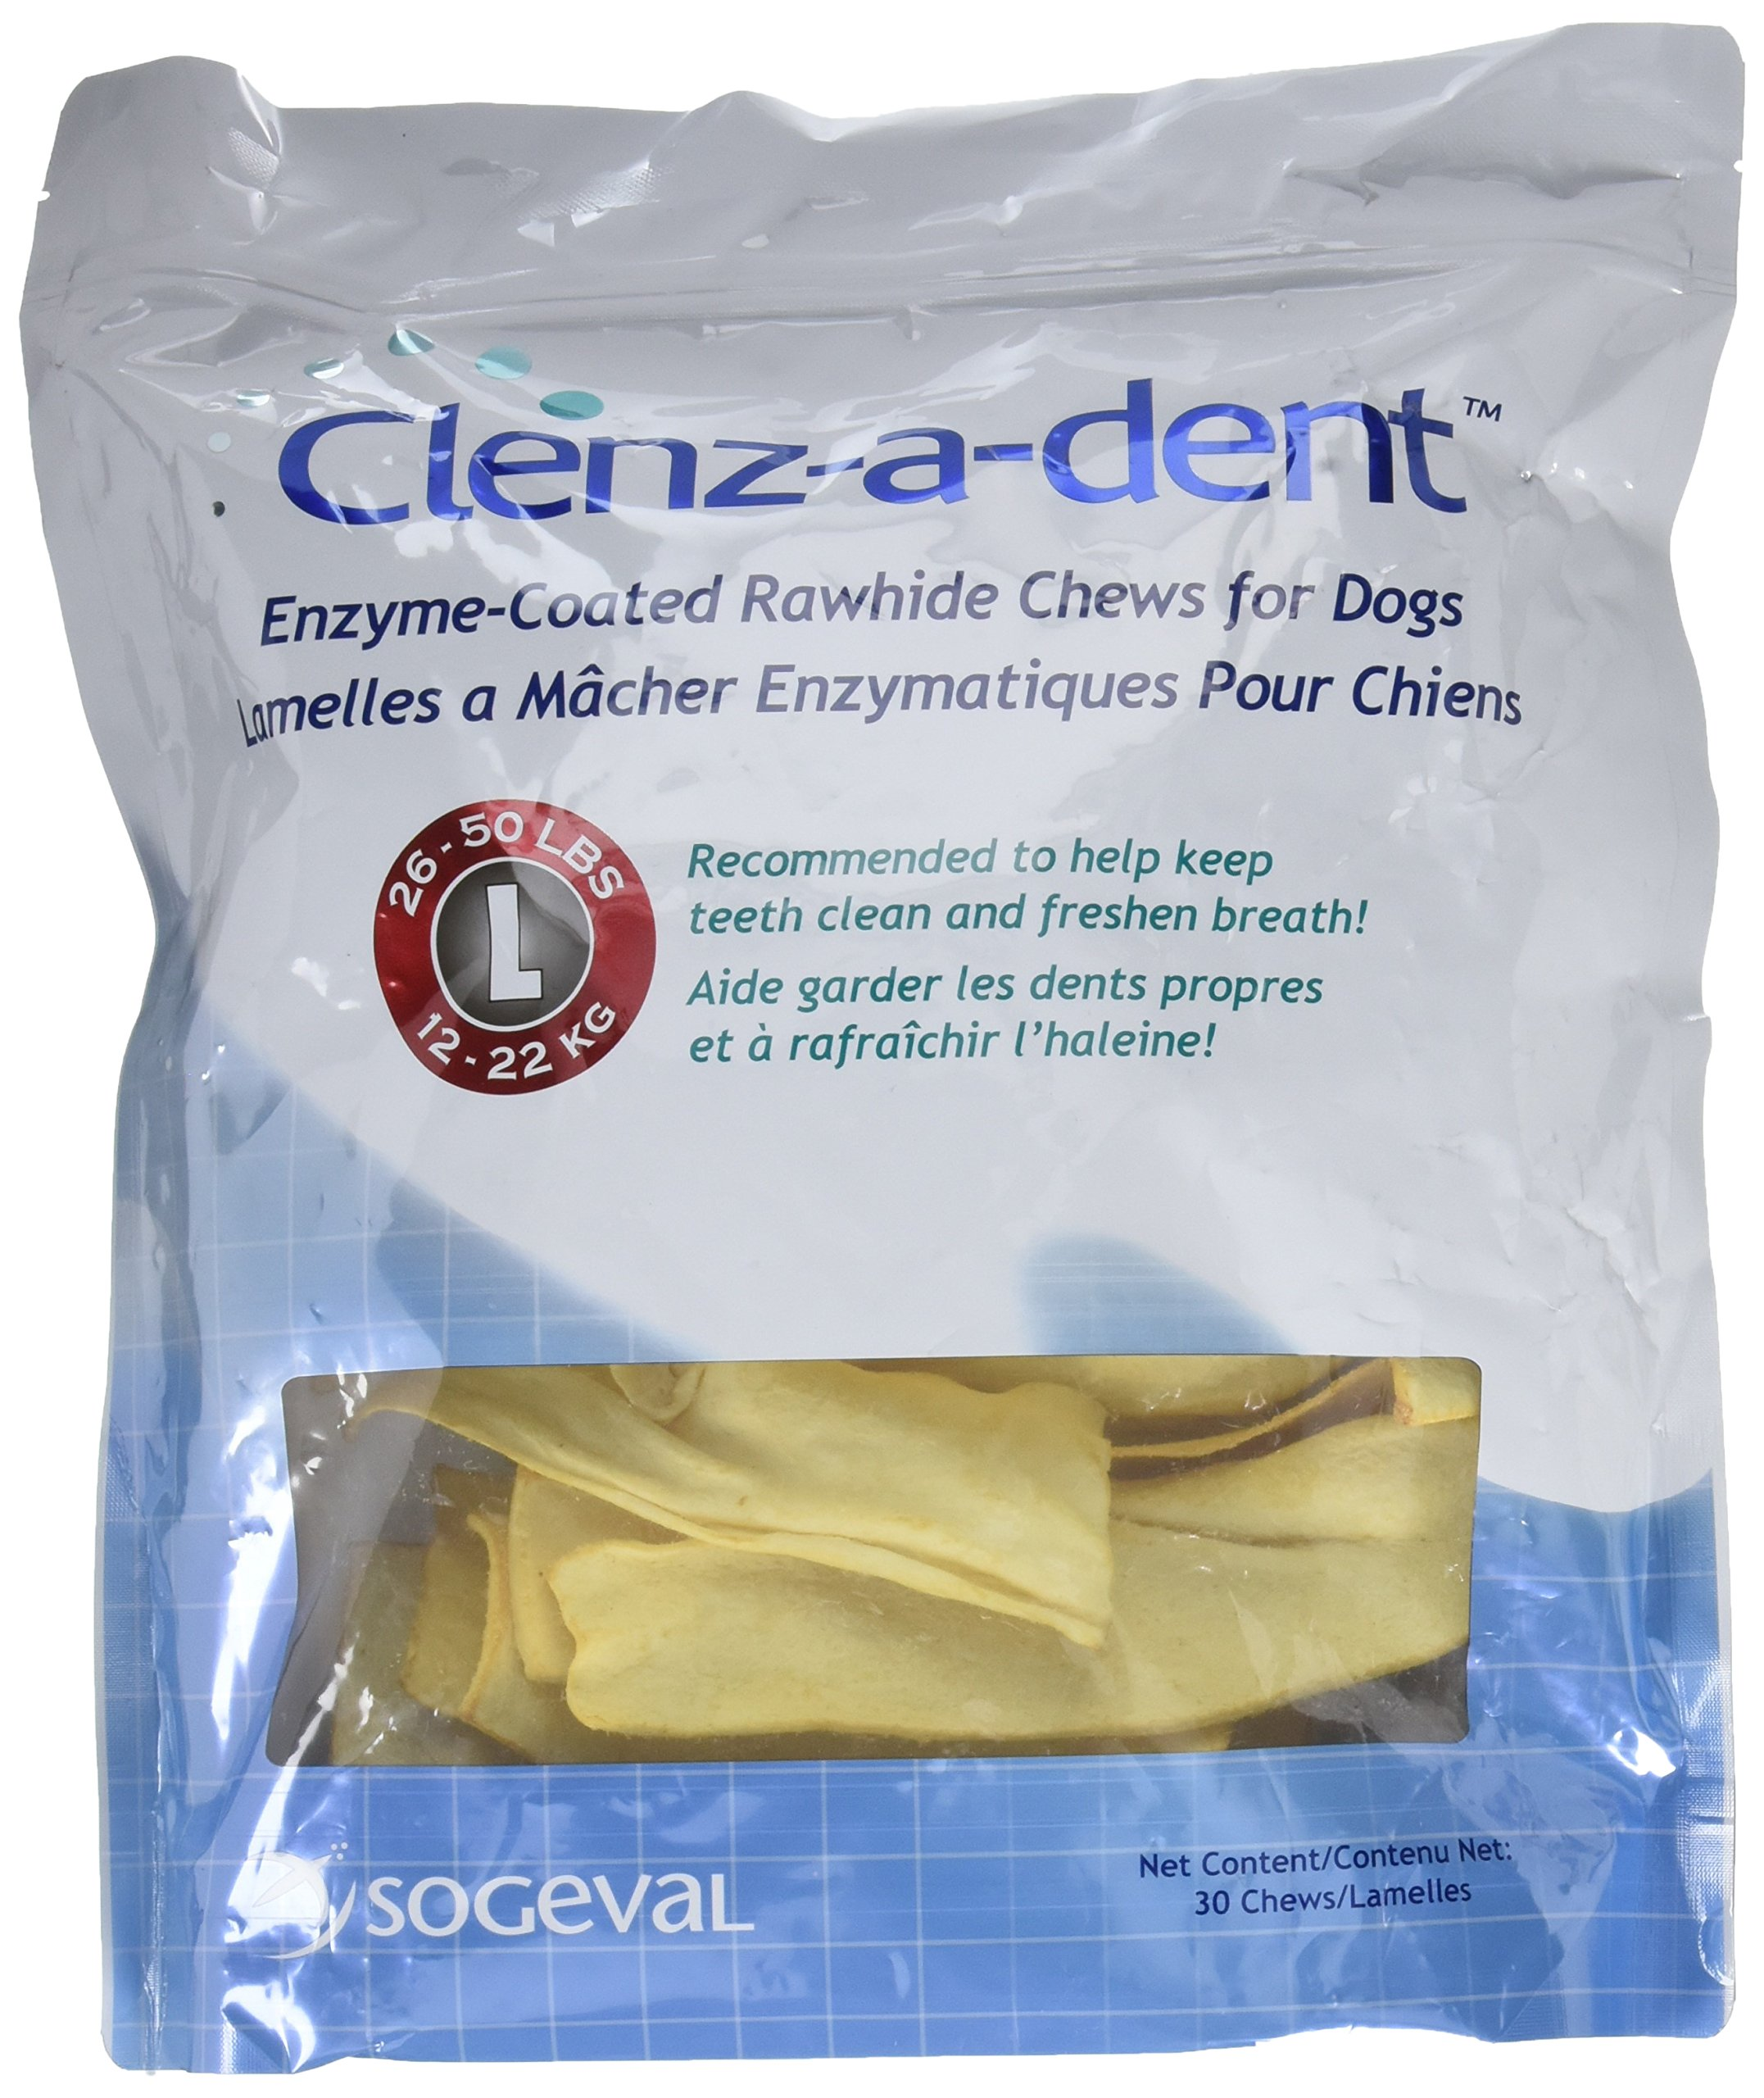 Clenzadent Rawhide Chews for Dogs Large (30 ct) by Clenz-a-dent